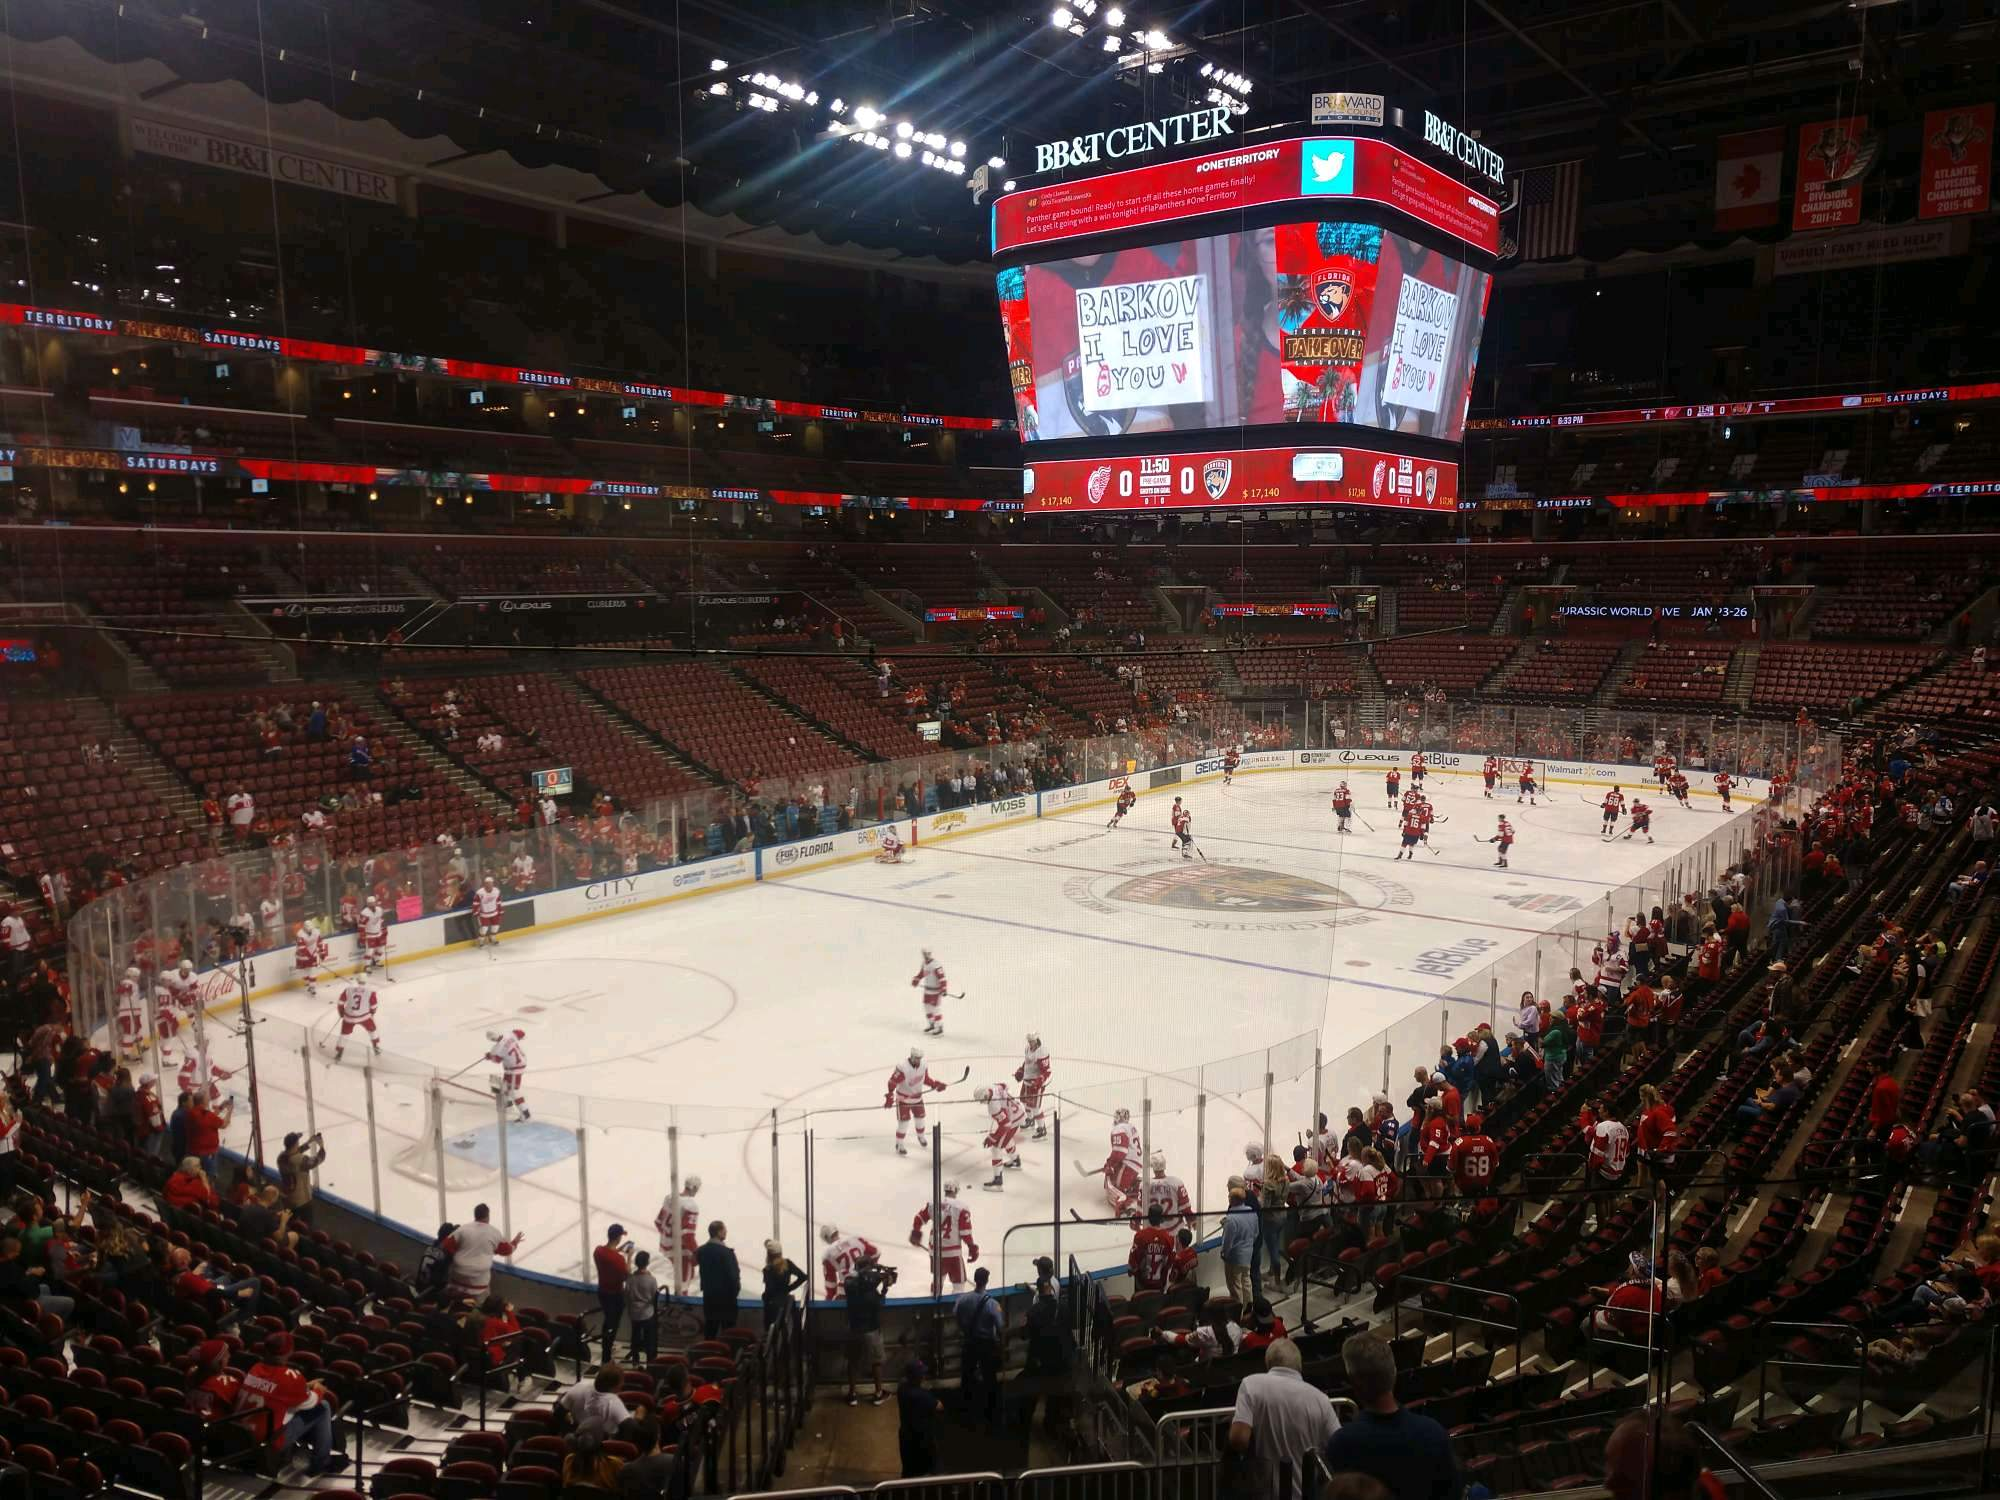 BB&T Center Section 124 Row 21 Seat 5